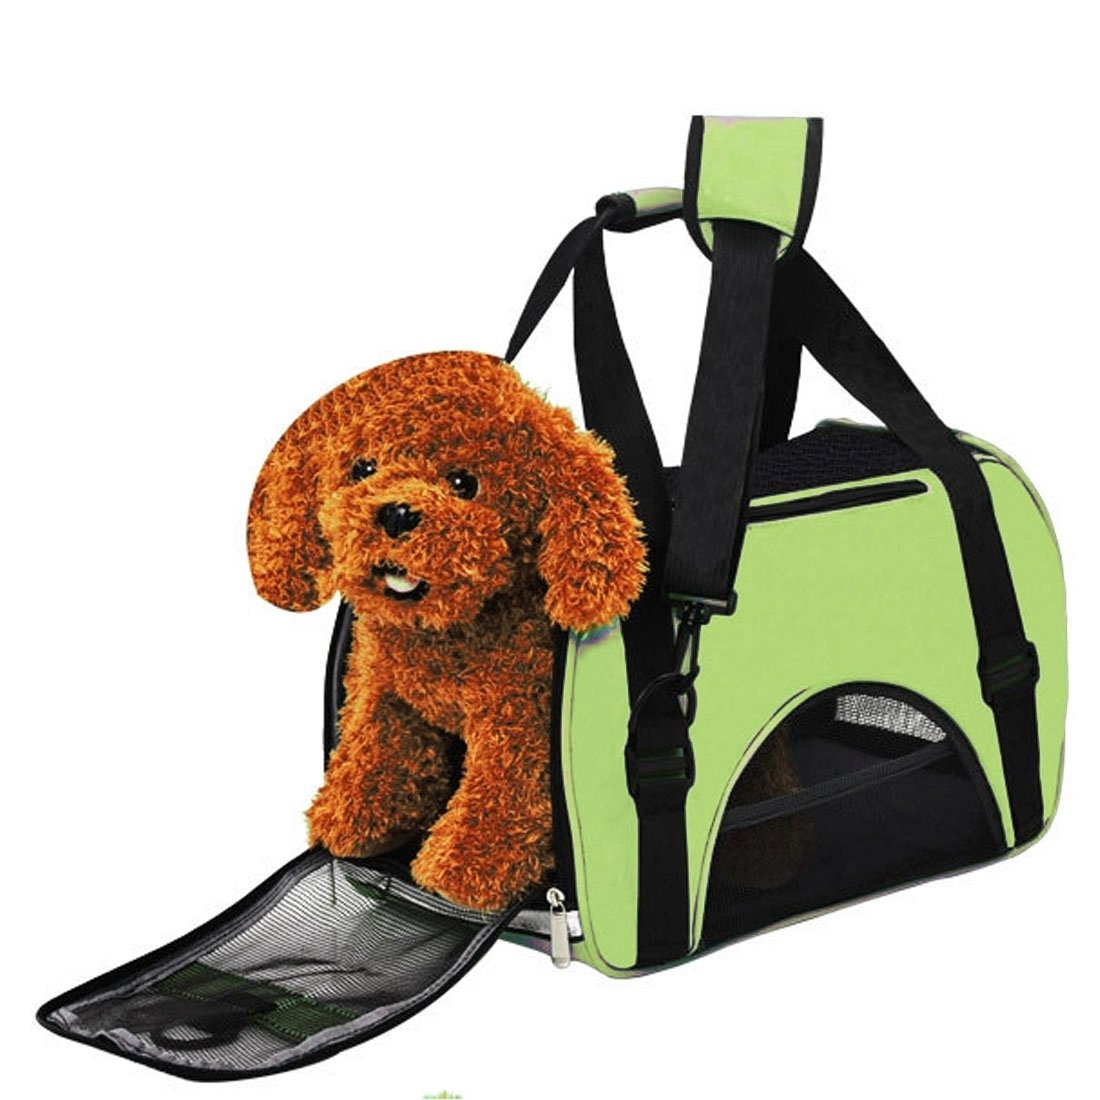 VAXT Sizing:503423cm, Conduct Raincoat Portable Pet Handbag Shoulder Bag for Cat/Dog and oher Pets Large (Color : Green)